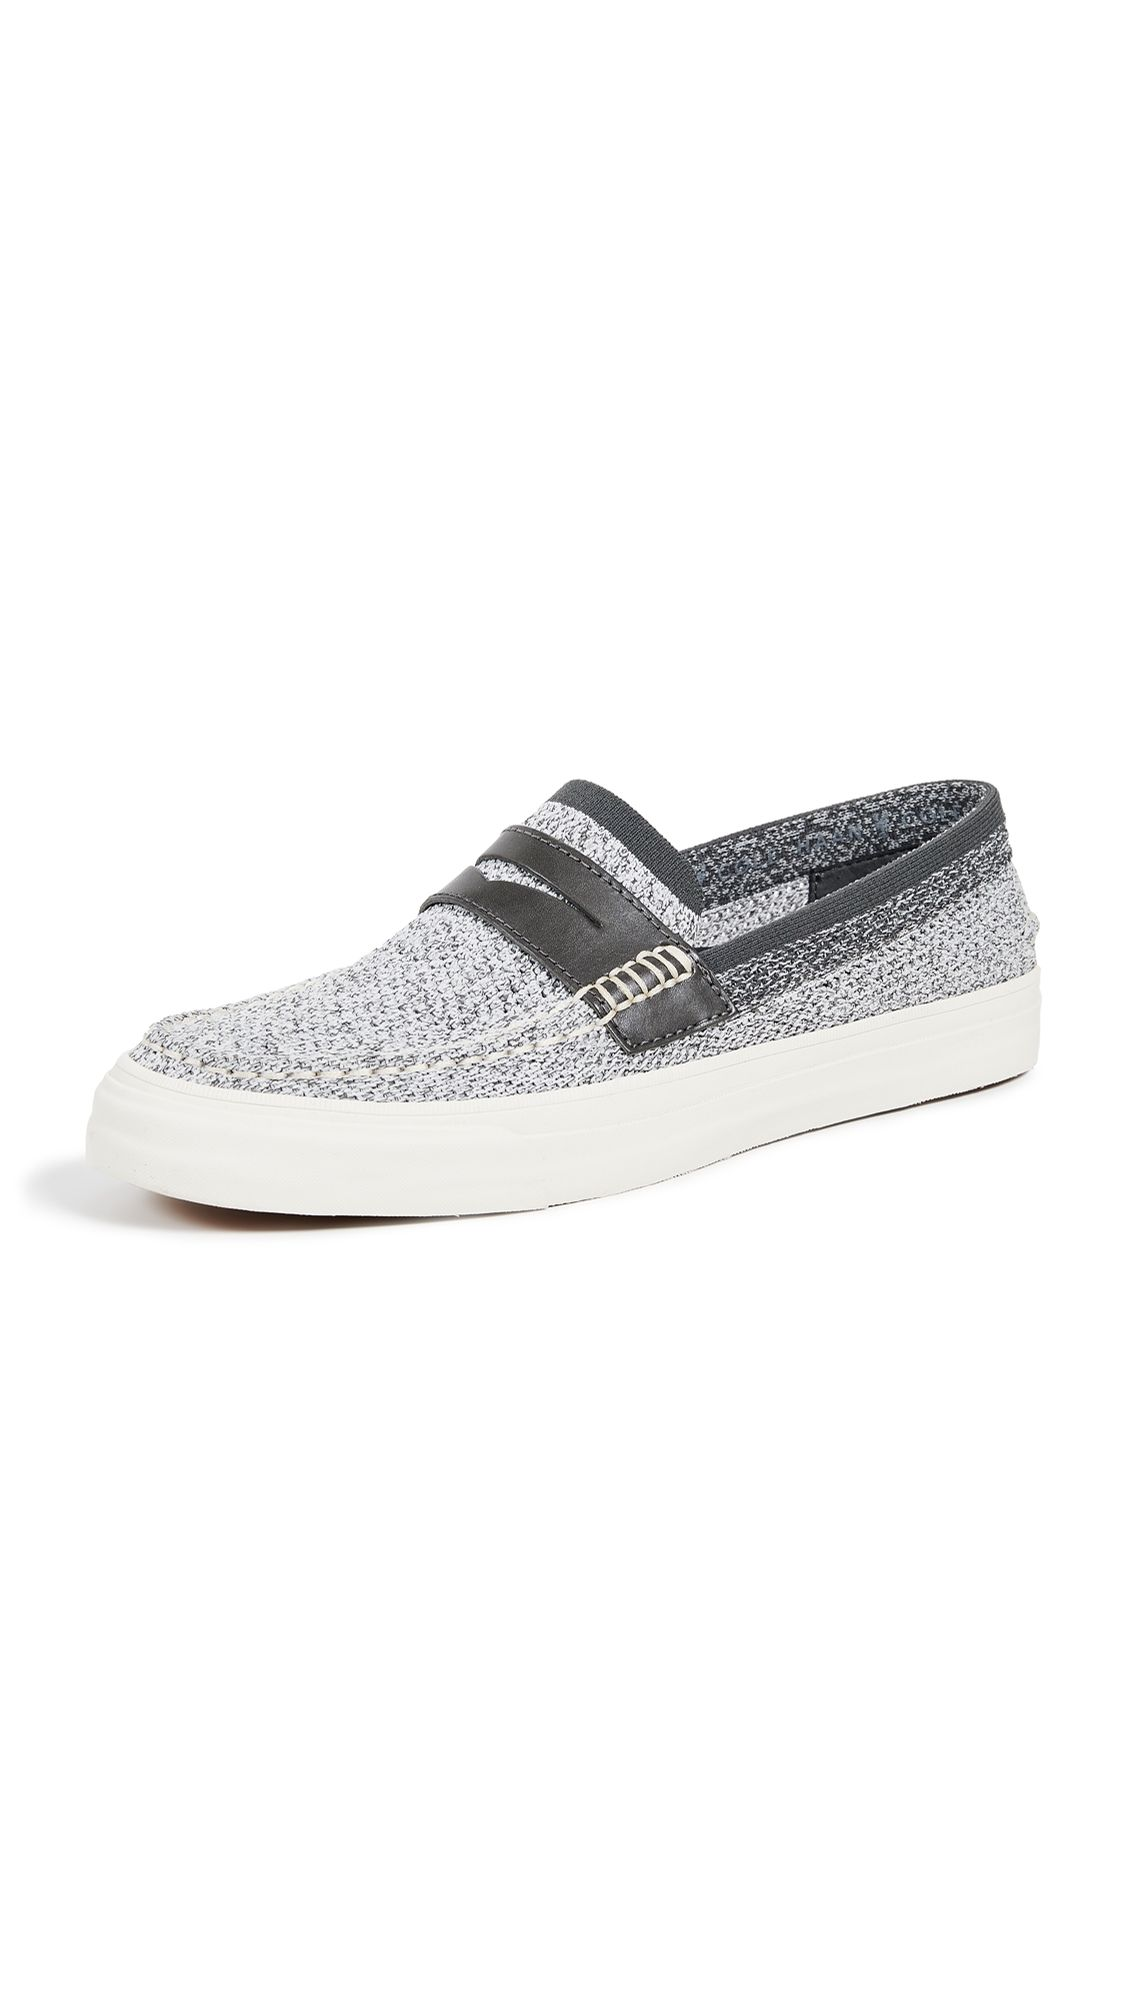 91e77e5d852 COLE HAAN PINCH WEEKENDER LX STITCHLITE LOAFERS.  colehaan  shoes ...